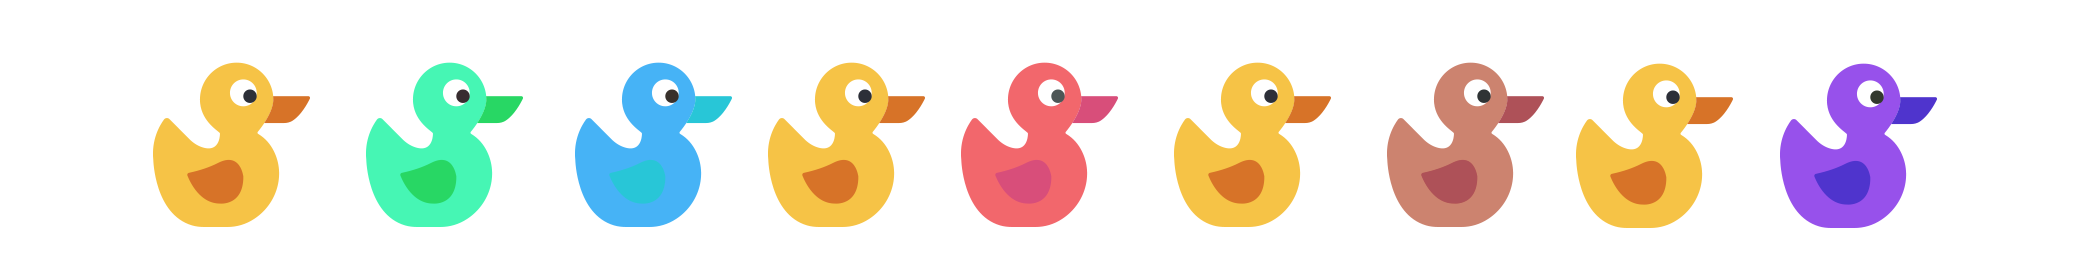 a day in the life association management creative services rh amrms com free clipart ducks in a row